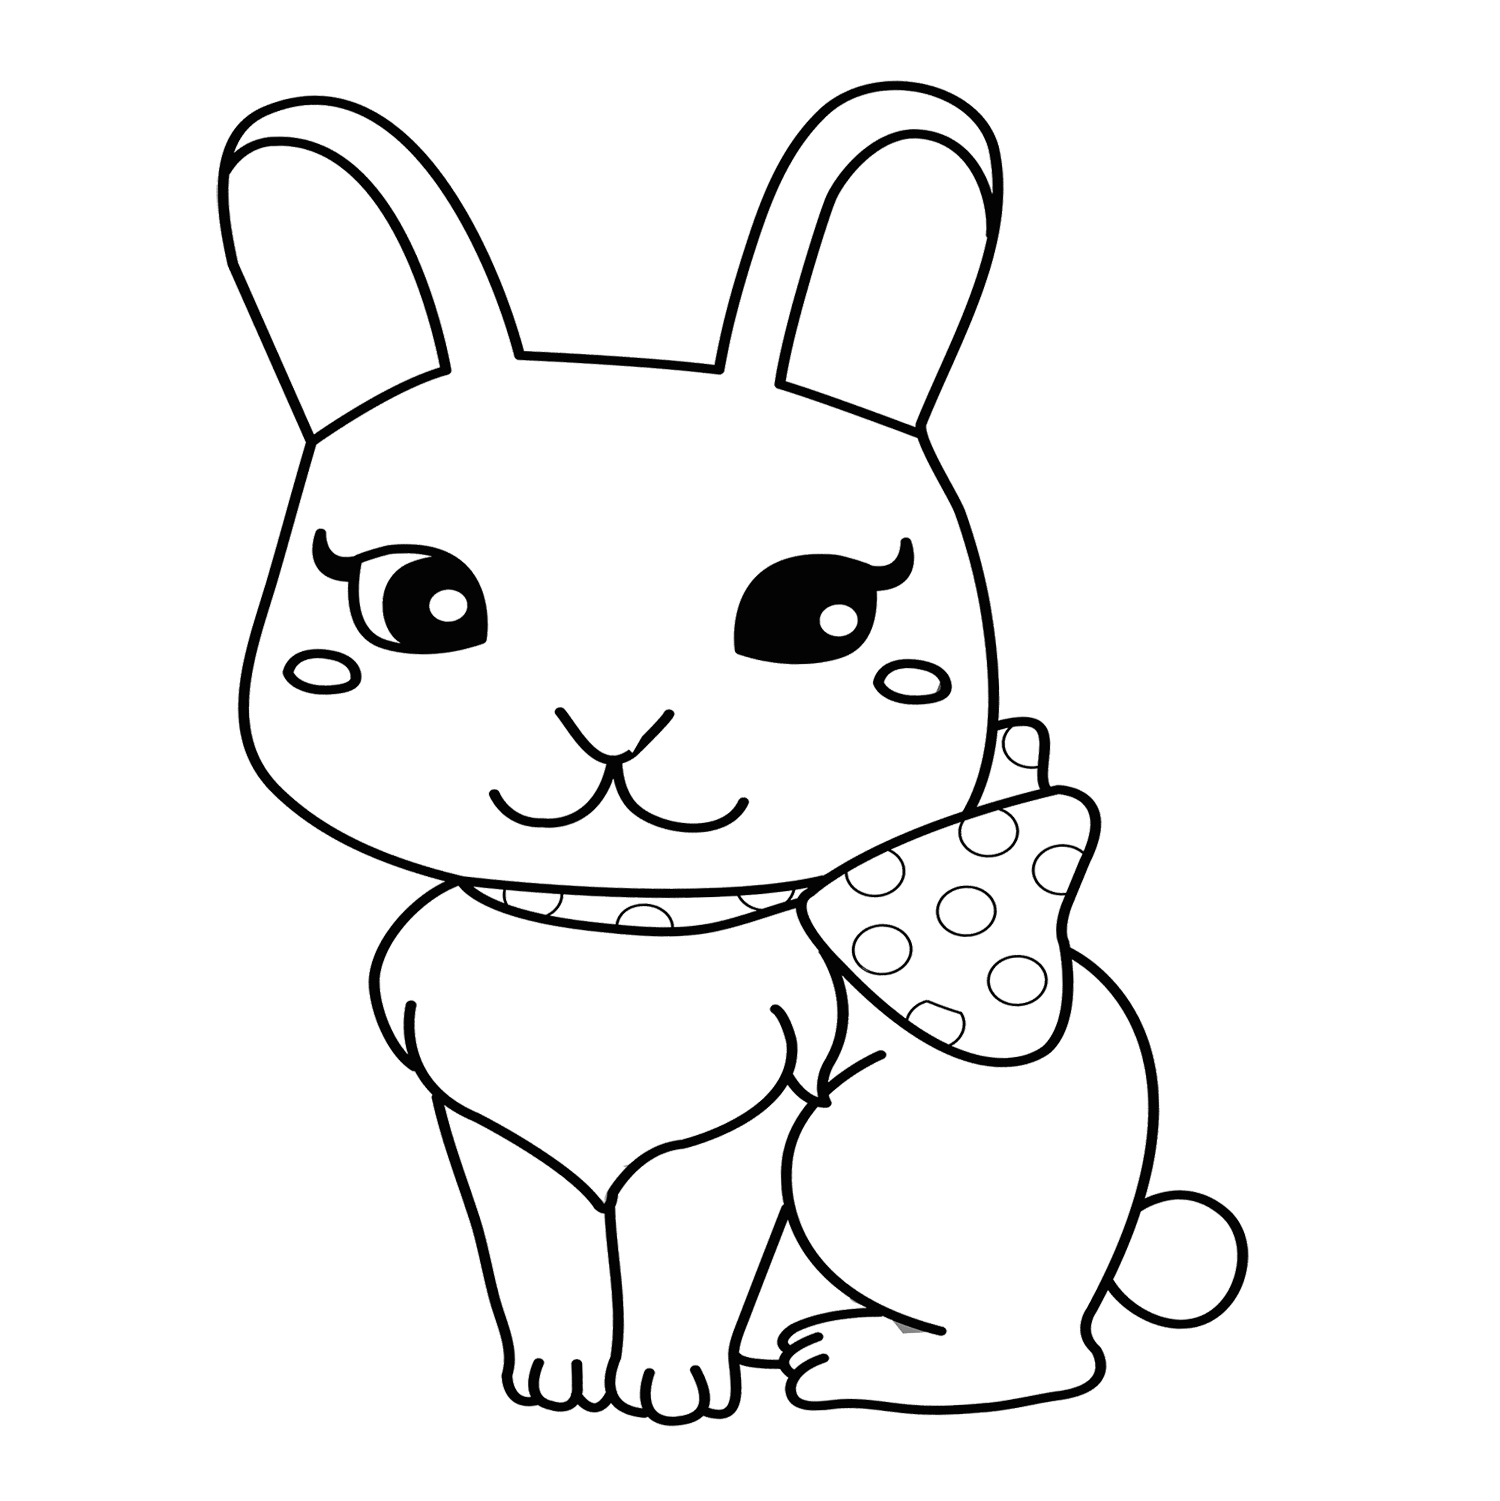 1500x1501 Cute Rabbit Coloring Pages Bunny